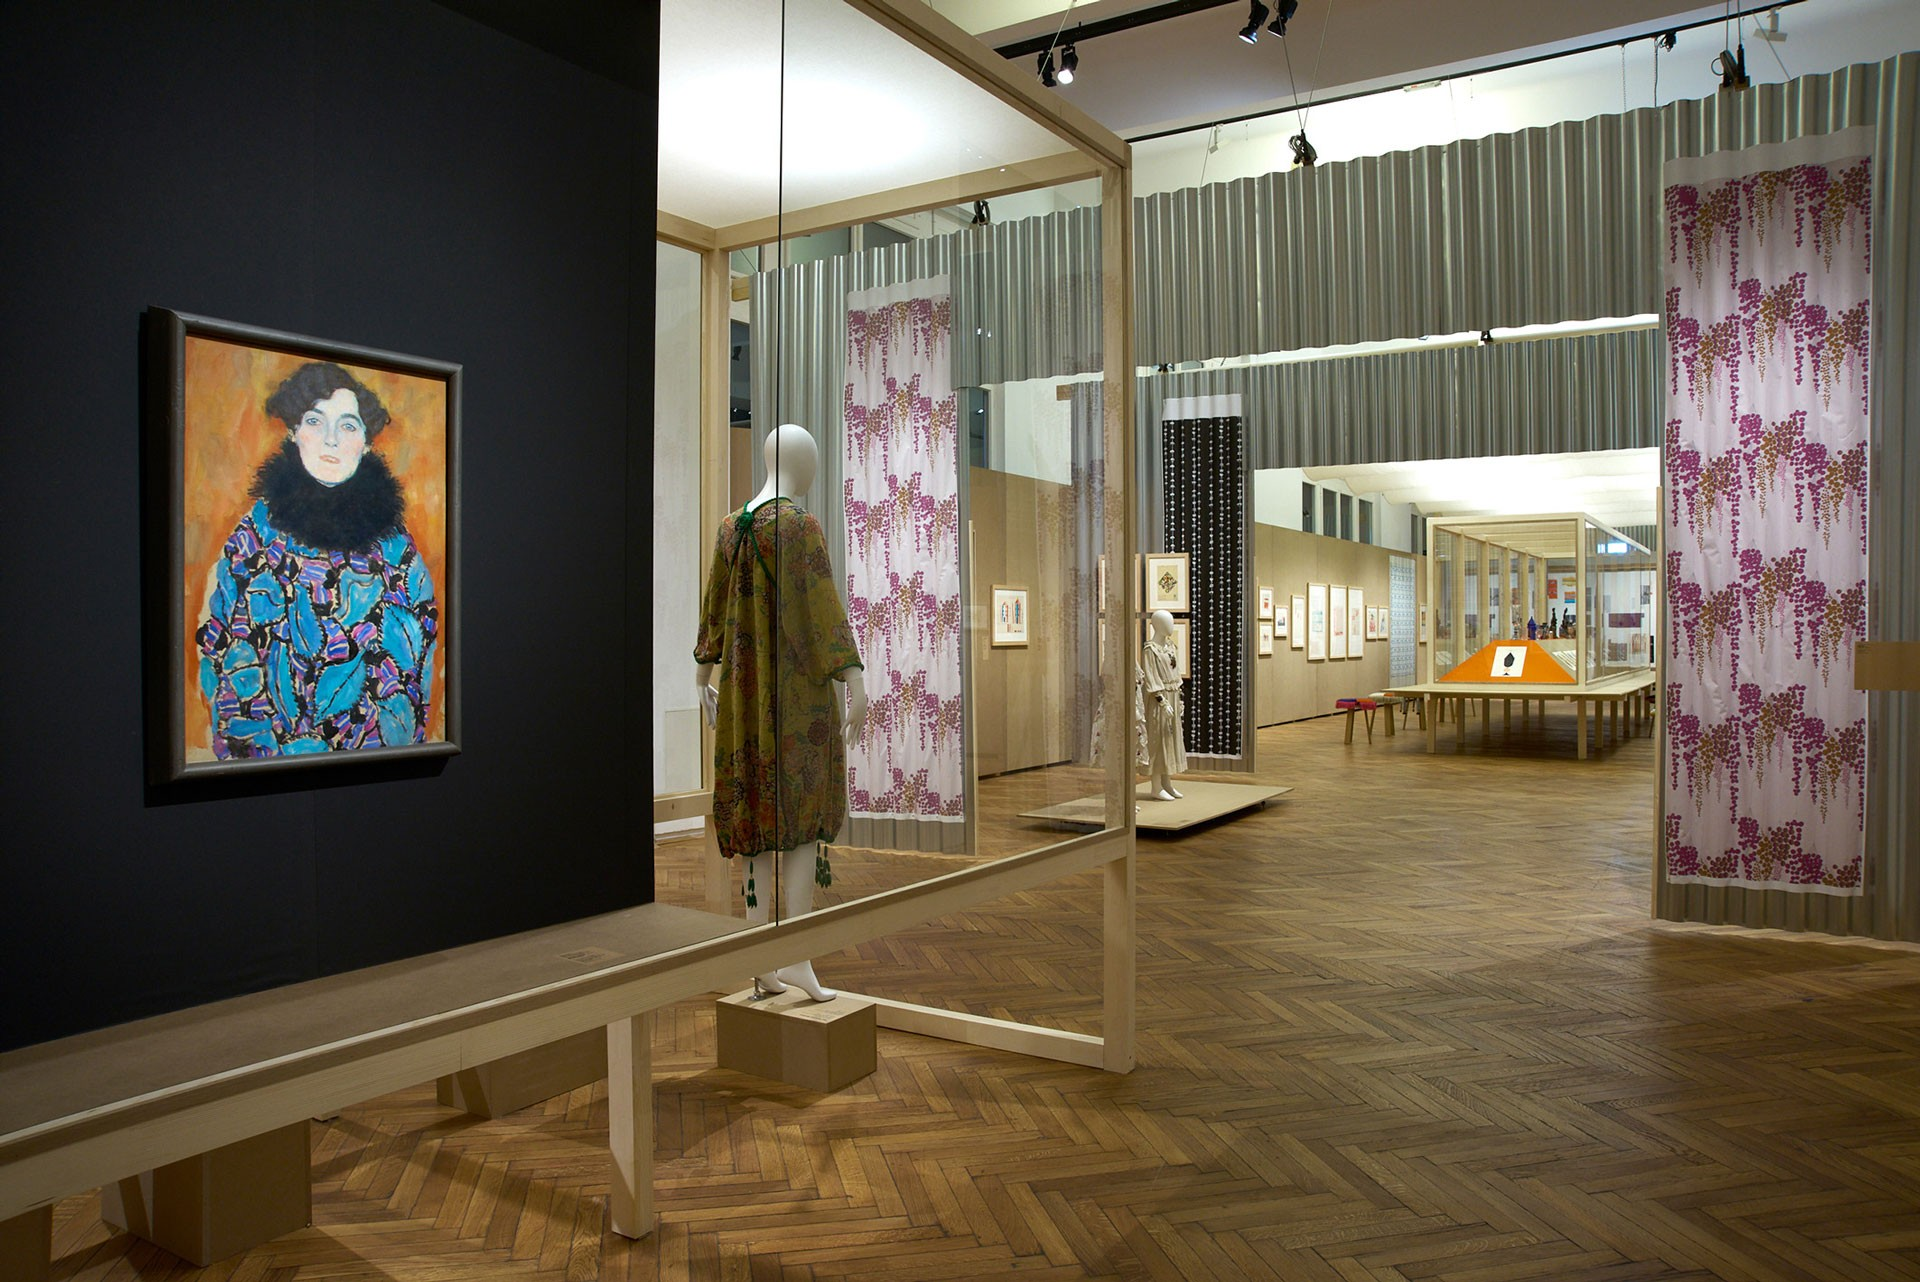 <BODY><div>MAK Exhibition View, 2021</div><div>WOMEN ARTISTS OF THE WIENER WERKSTÄTTE</div><div>in the front: Gustav Klimt, Portrait of Johanna Staude (dressed in an item of clothing made from the WW fabric [Leaves] by Martha Alber), 1917/18</div><div>MAK Exhibition Hall</div><div>© MAK/Georg Mayer</div><div> </div></BODY>